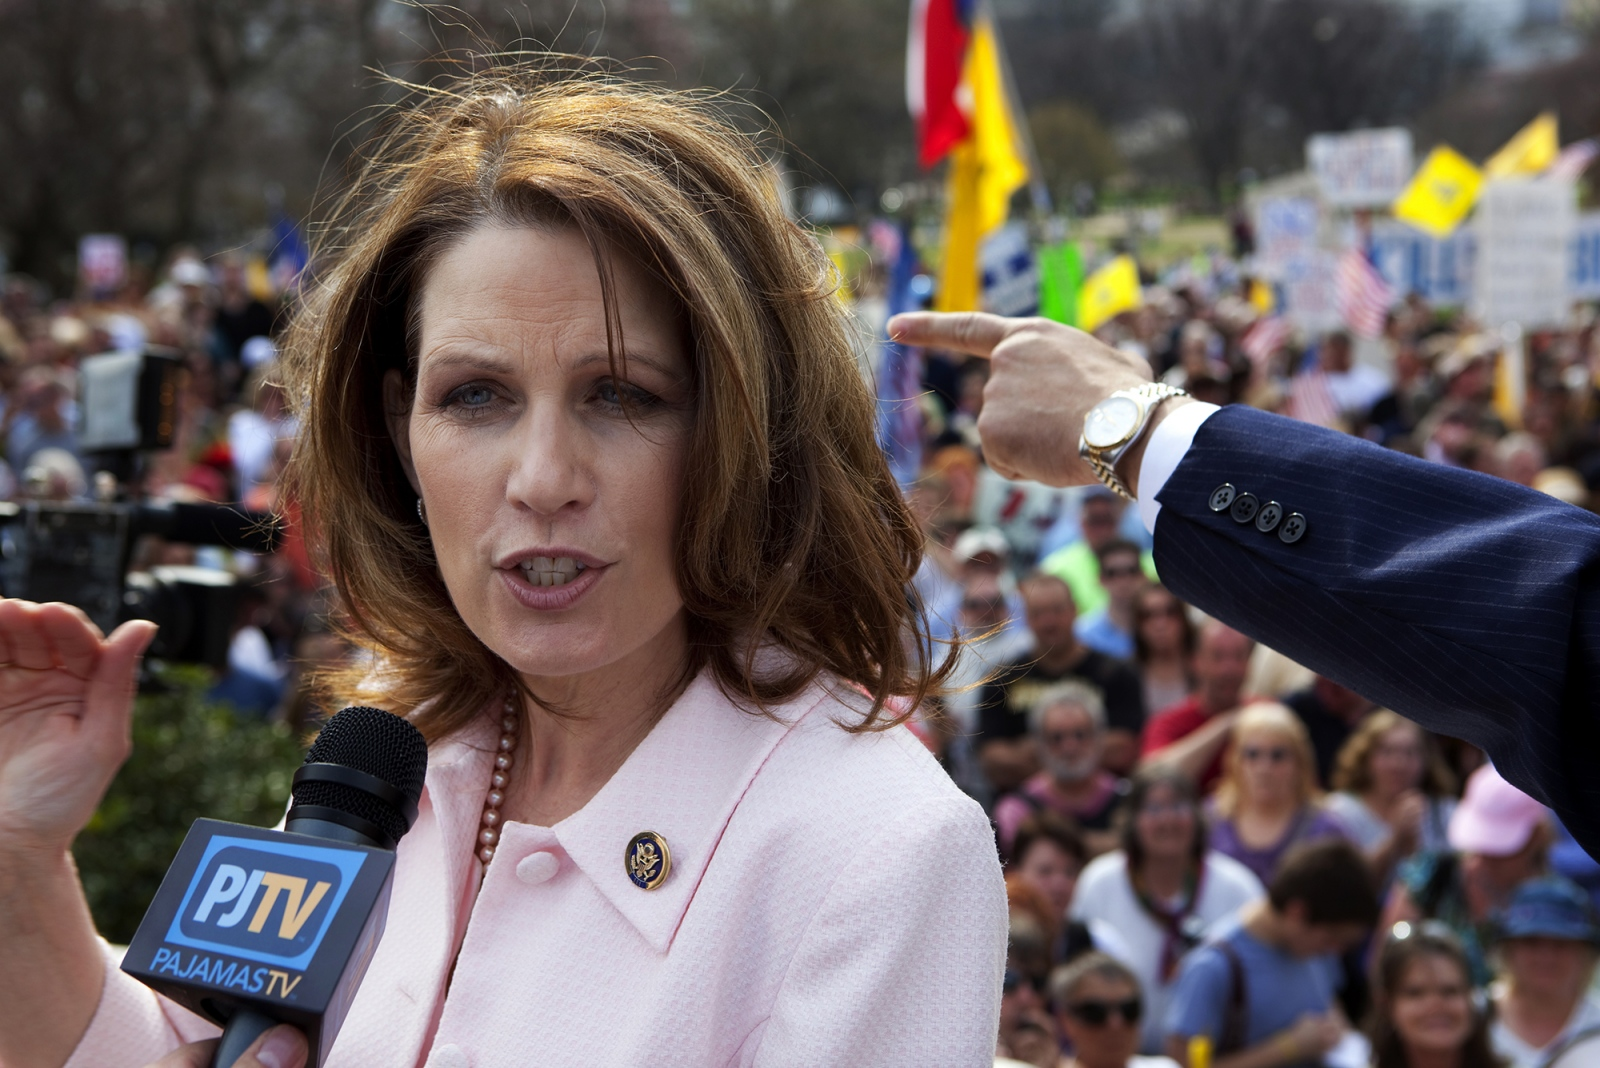 Then-RepresentativeMichelle Bachman being interviewed outside the Capitol building.